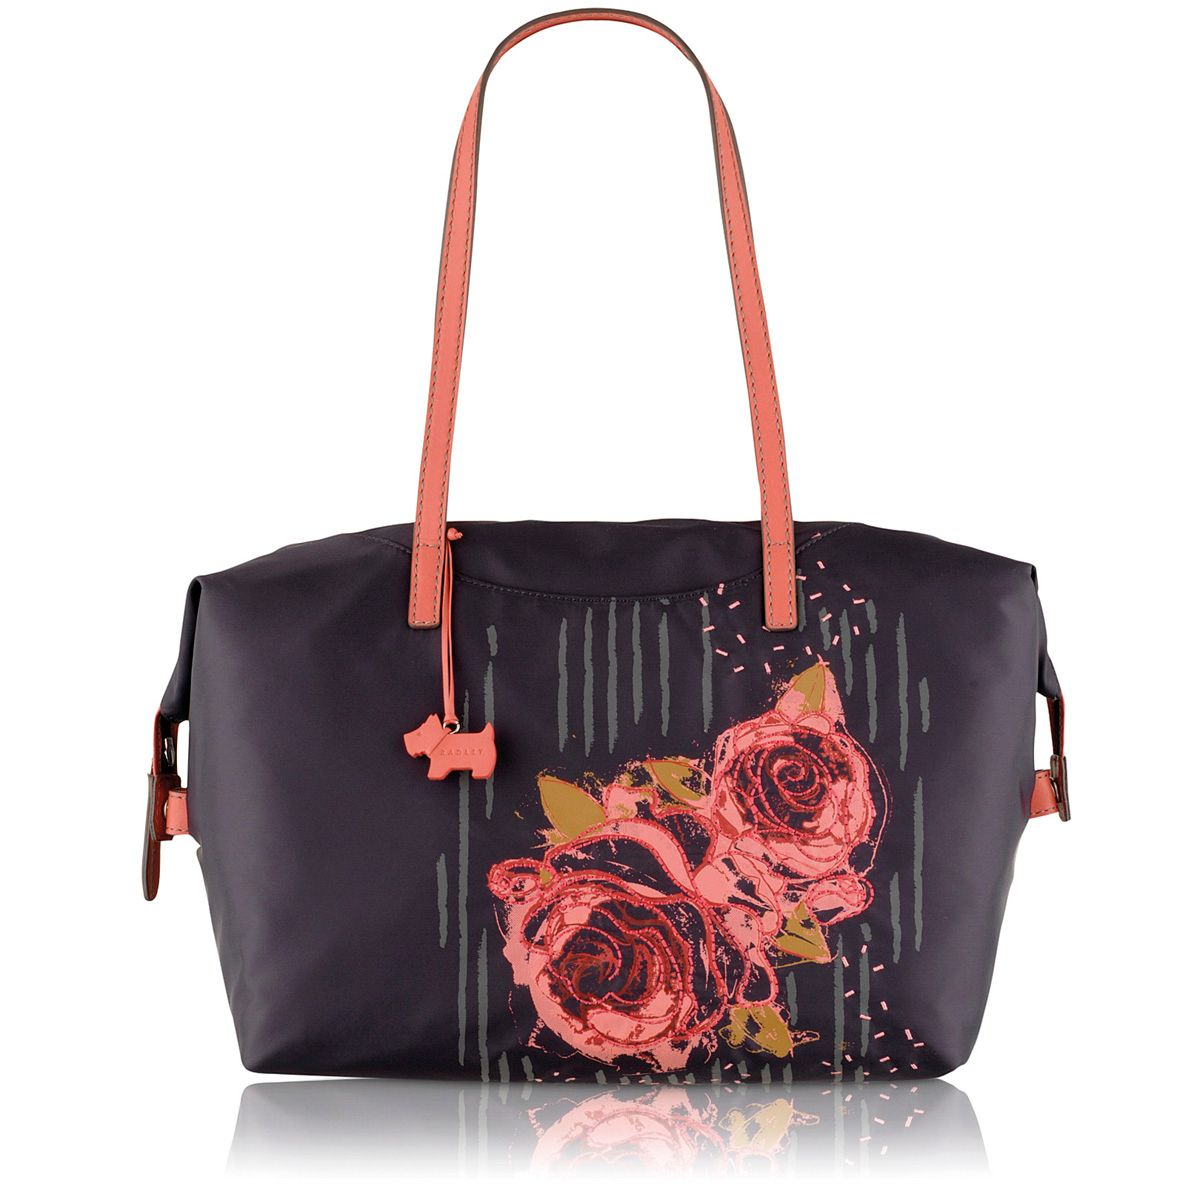 Swanson purple medium crossbody tote bag